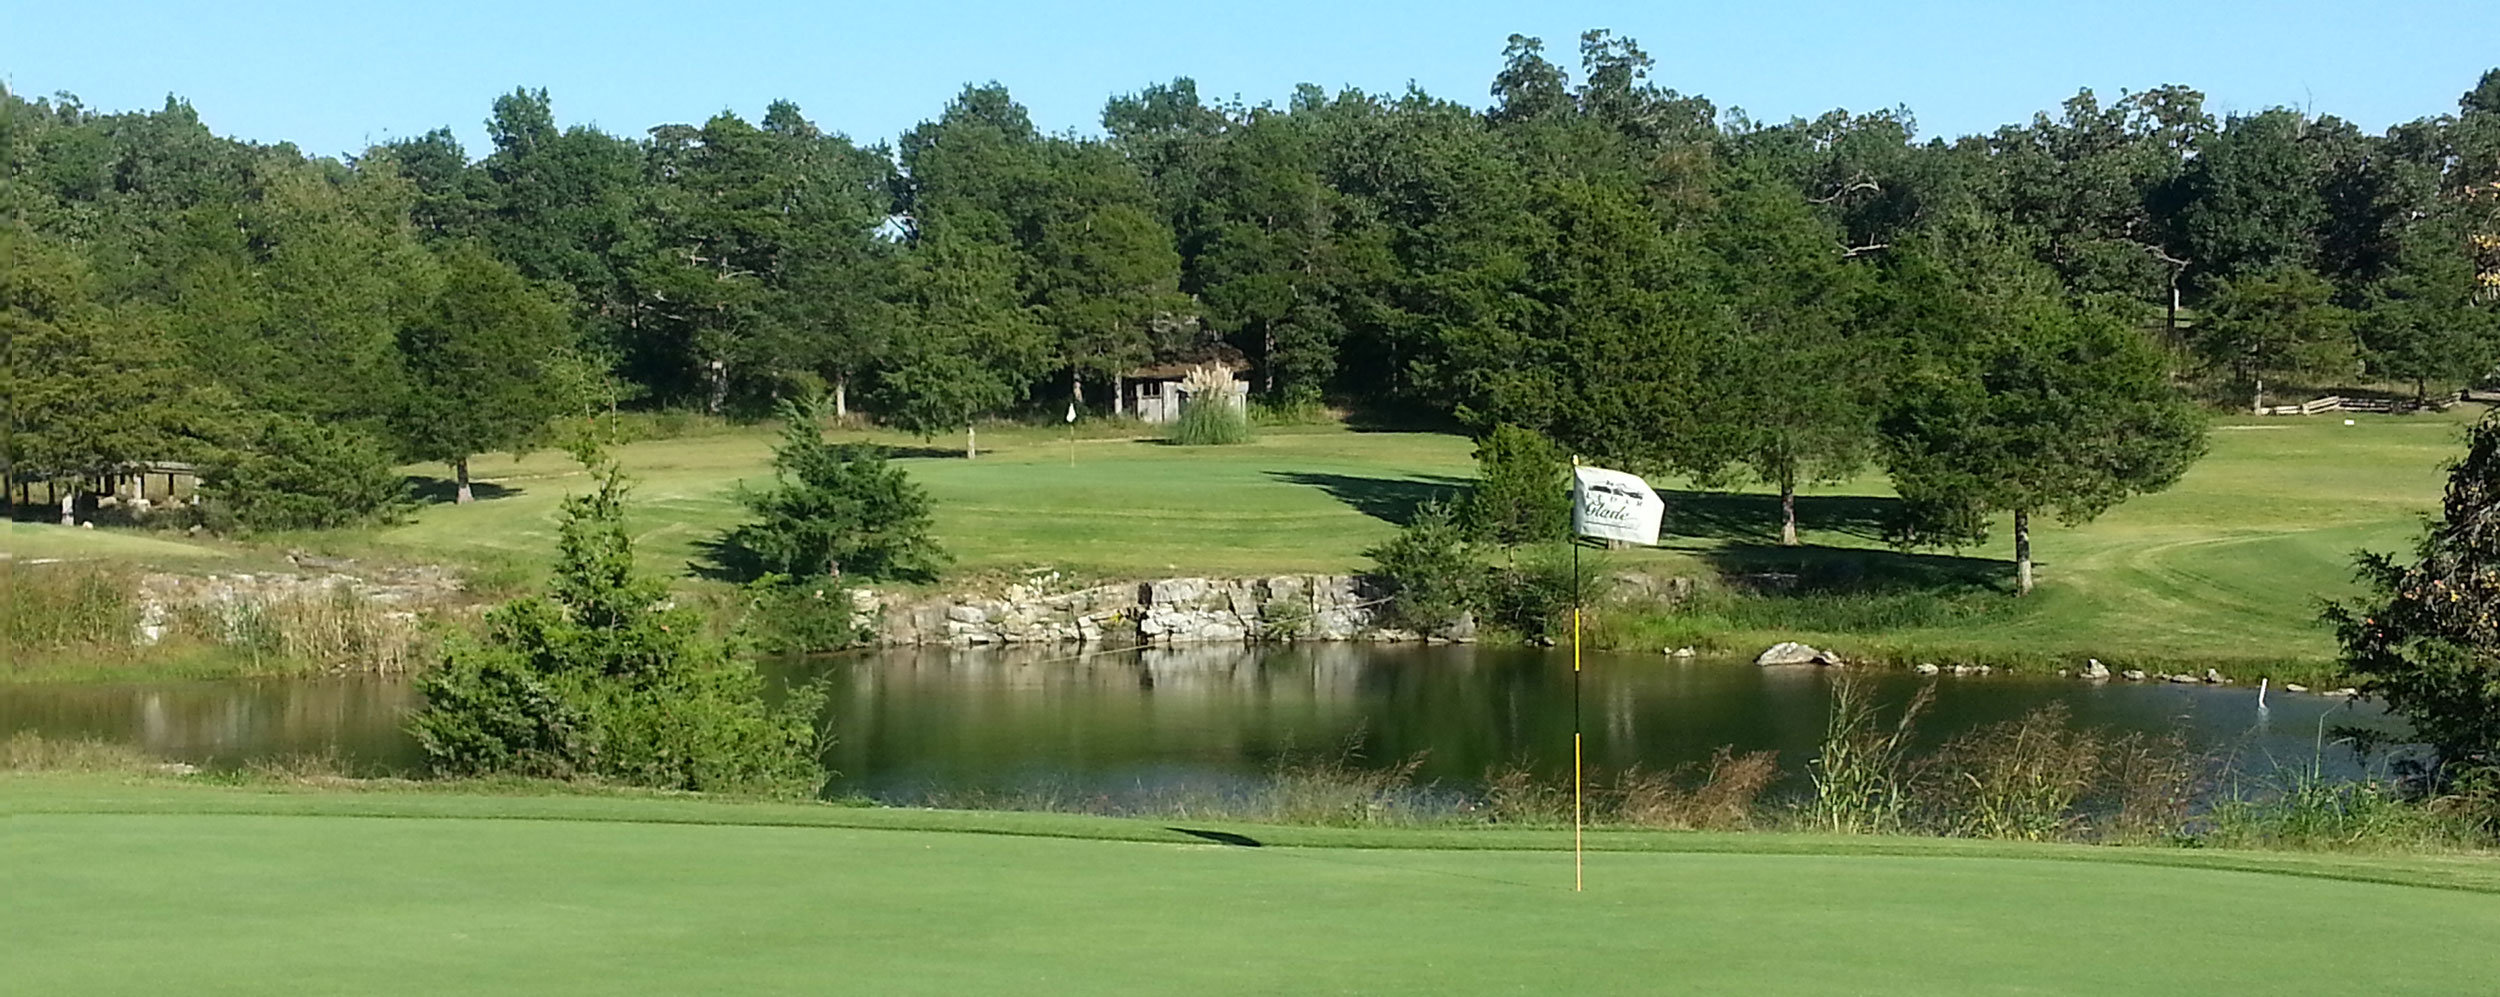 Cedar Glade Resort and Country Club - Horseshoe Bend, Arkansas.